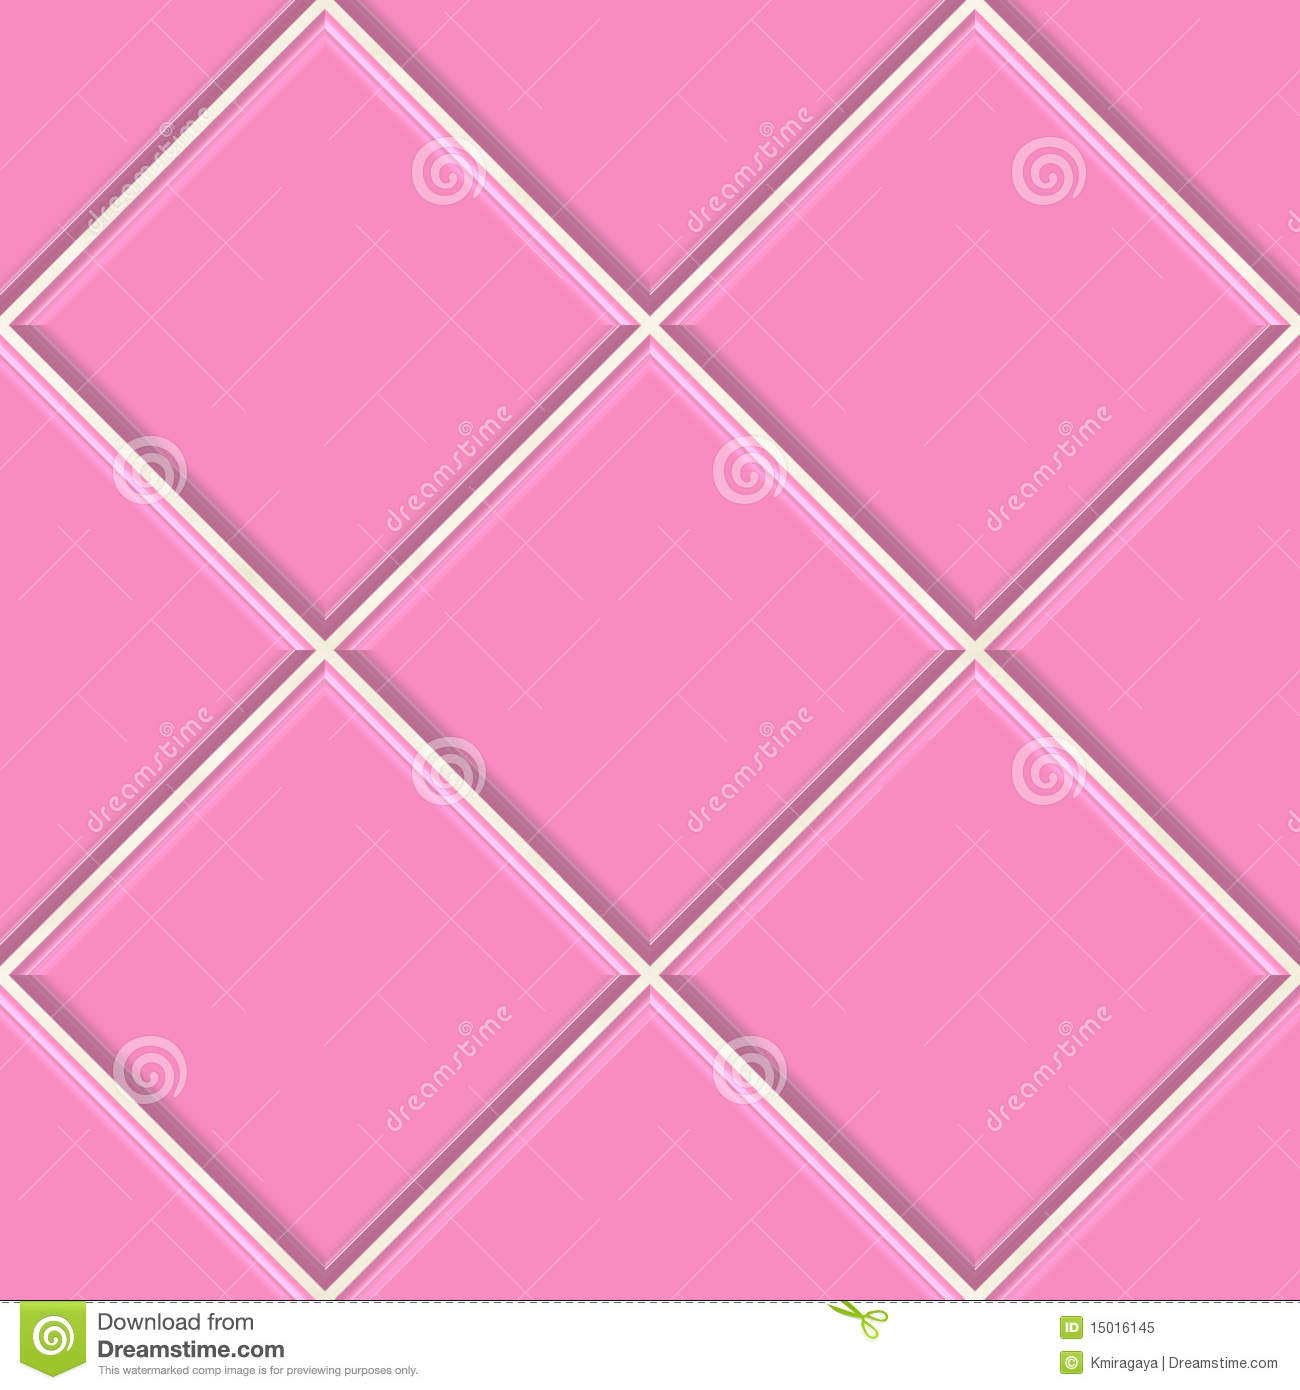 Seamless Pink Tiles Texture Background Stock Illustration